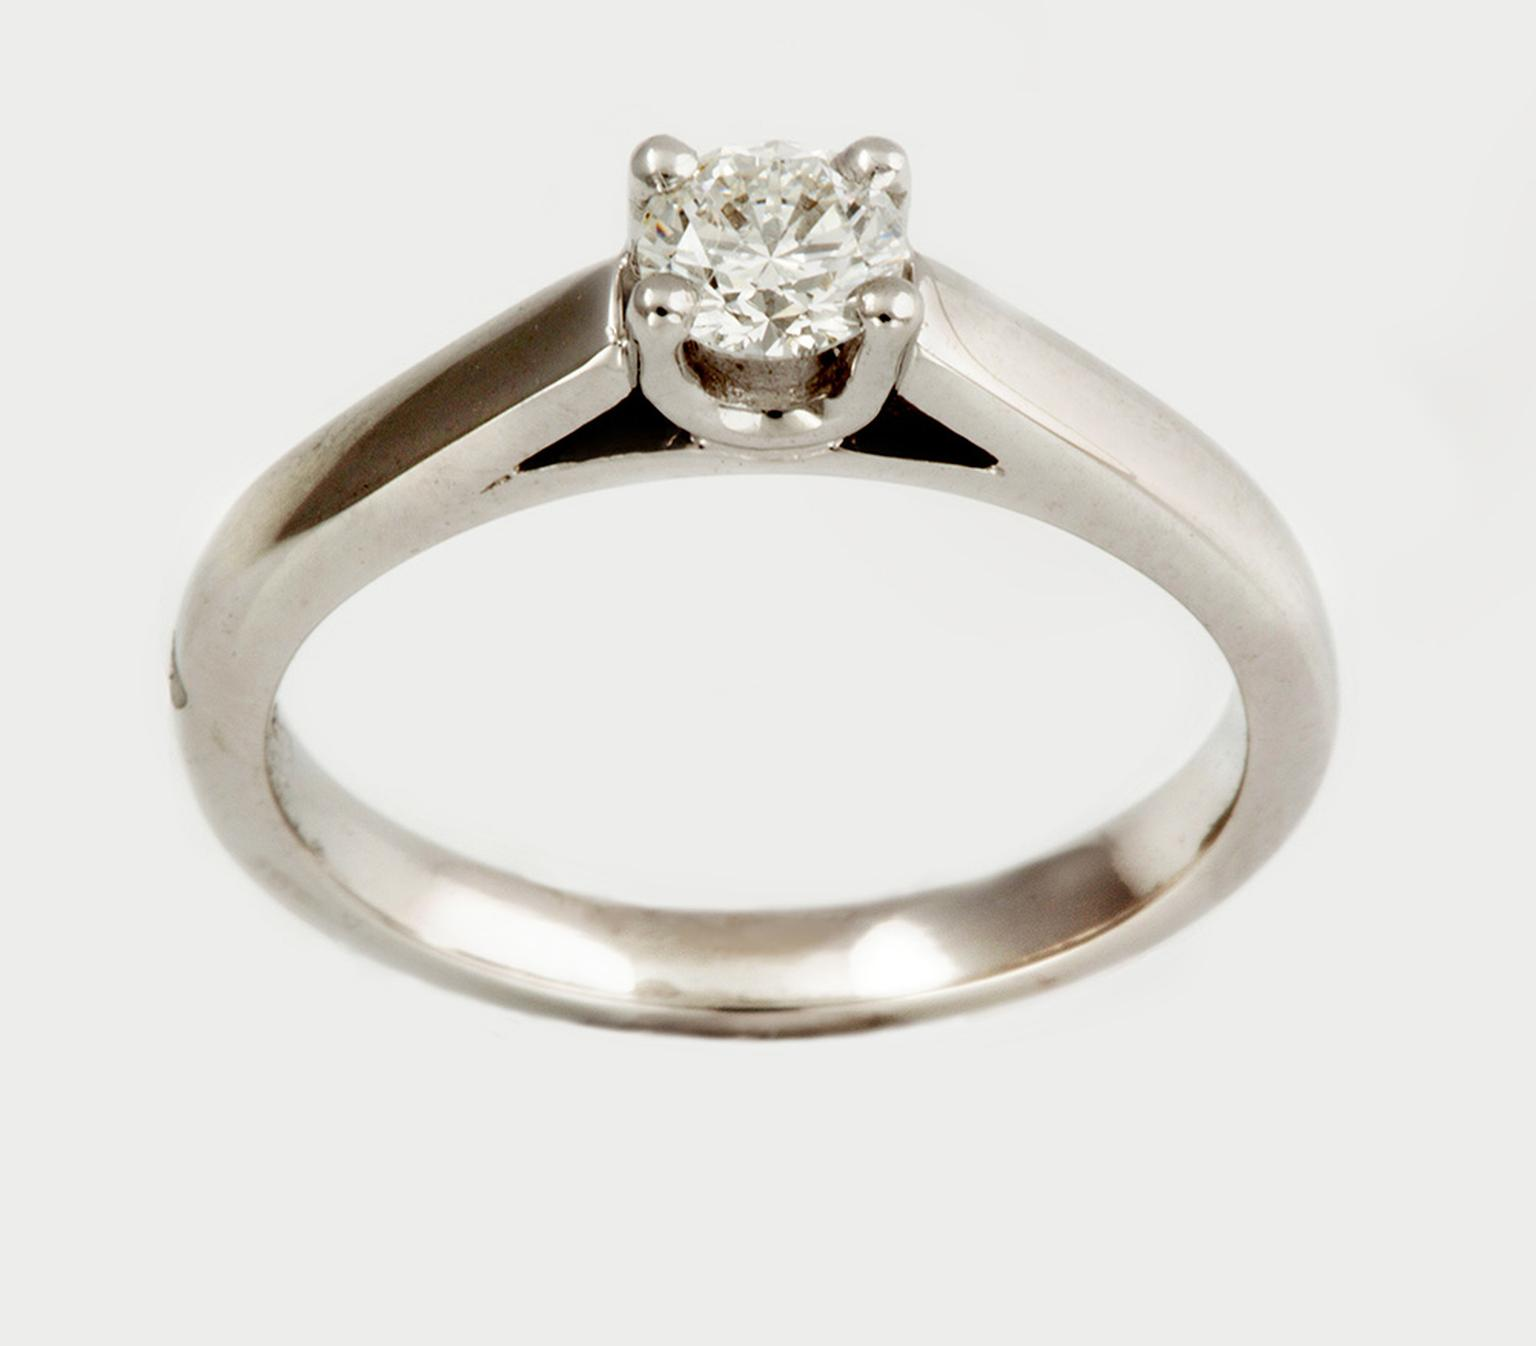 Foundation Calliope solitaire engagement ring (from £1,500), available in 18ct Fairtrade white, yellow or rose gold